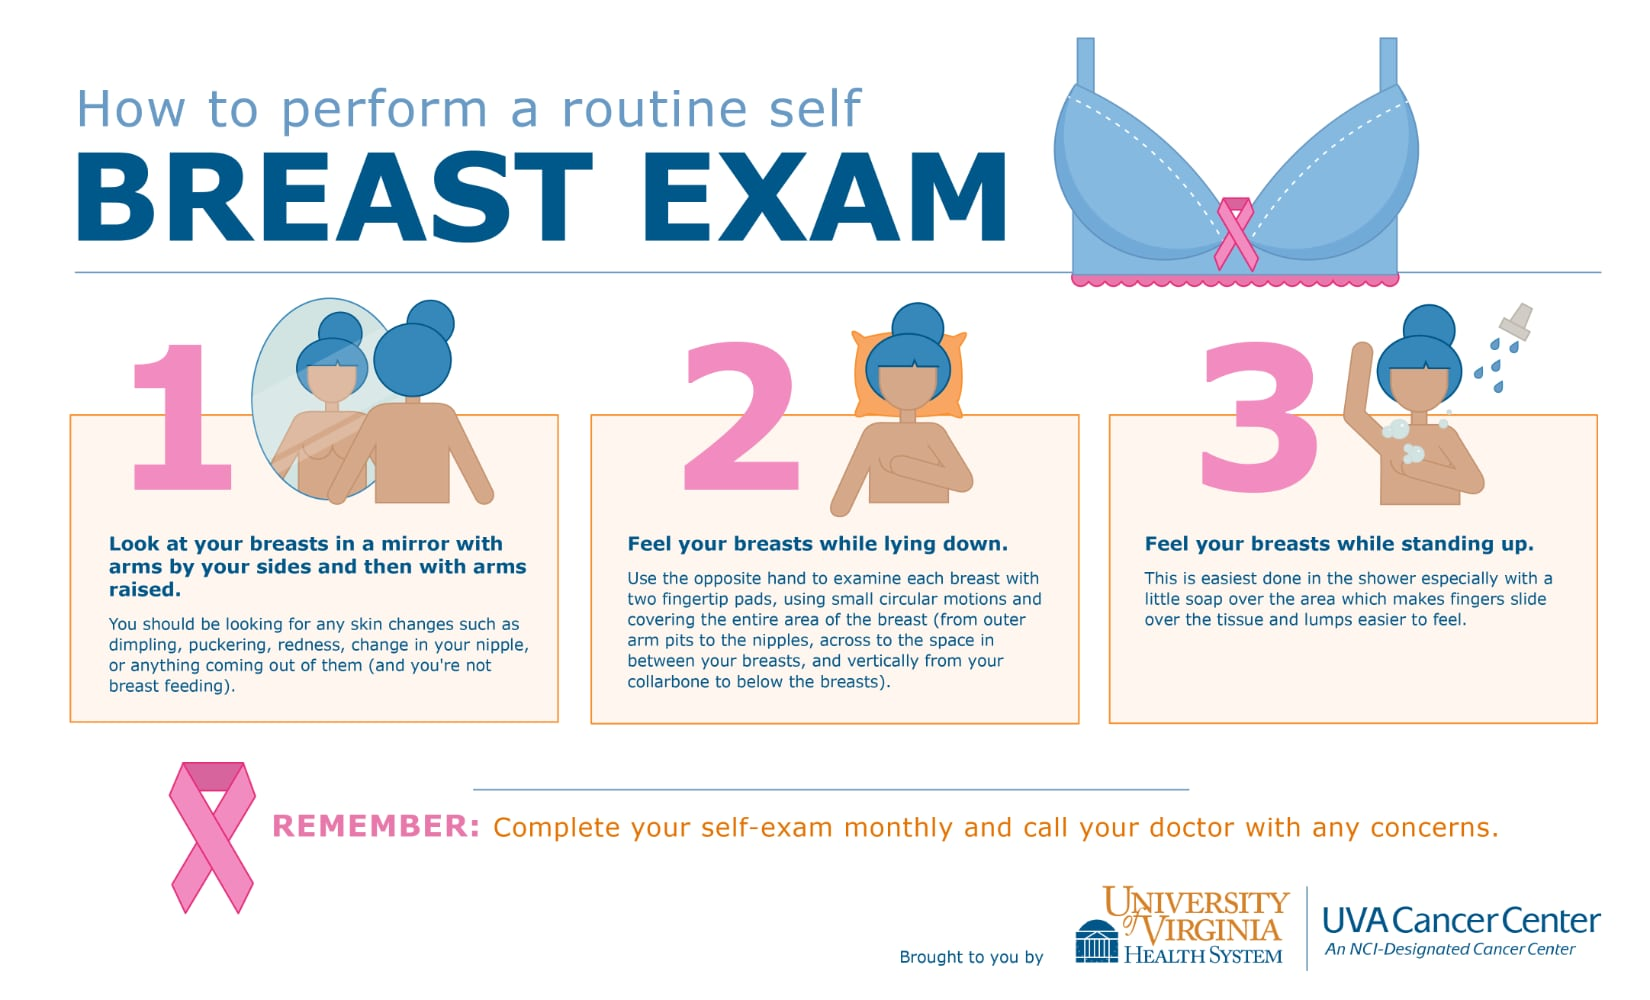 UVA Cancer Center - How to perform a routine self breast exam